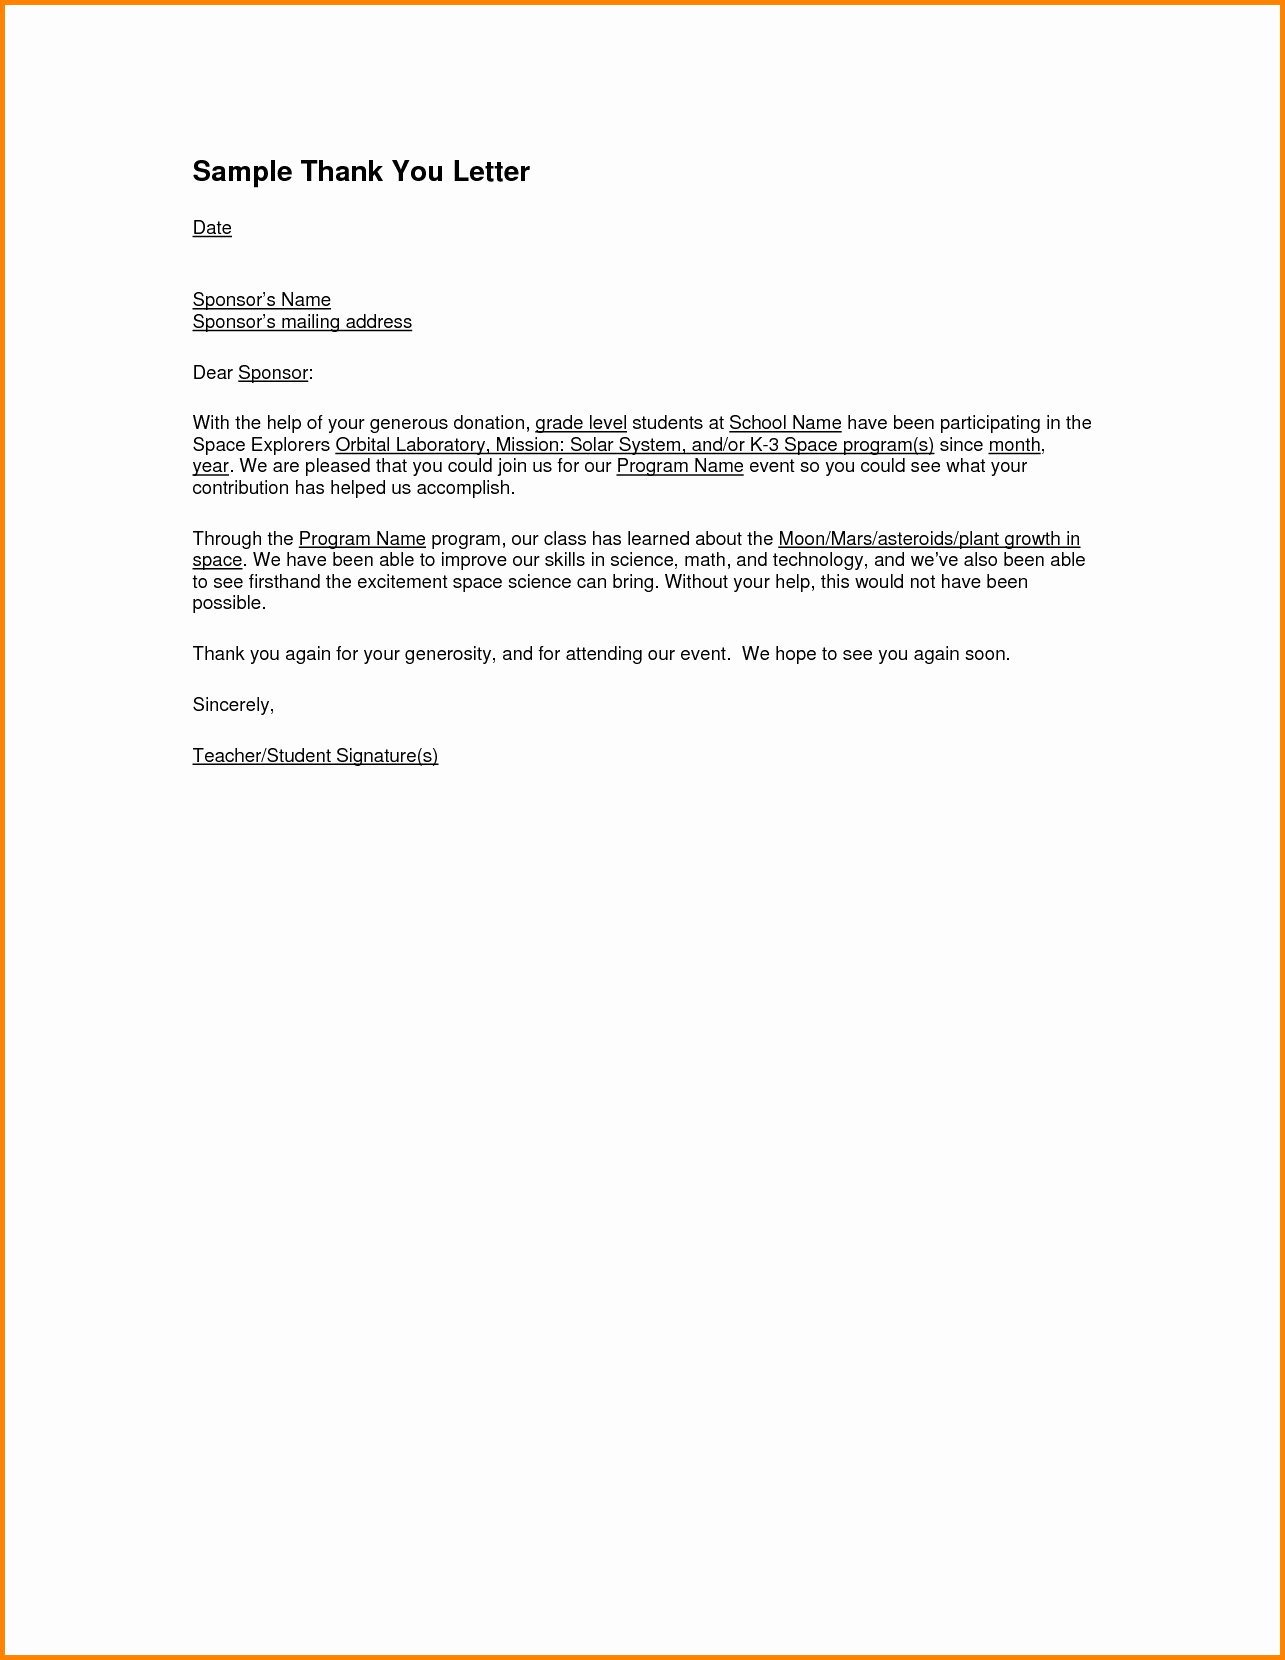 Sponsorship Thank You Letter Template - Example Thank You Letter for Sponsorship Beautiful Thank You